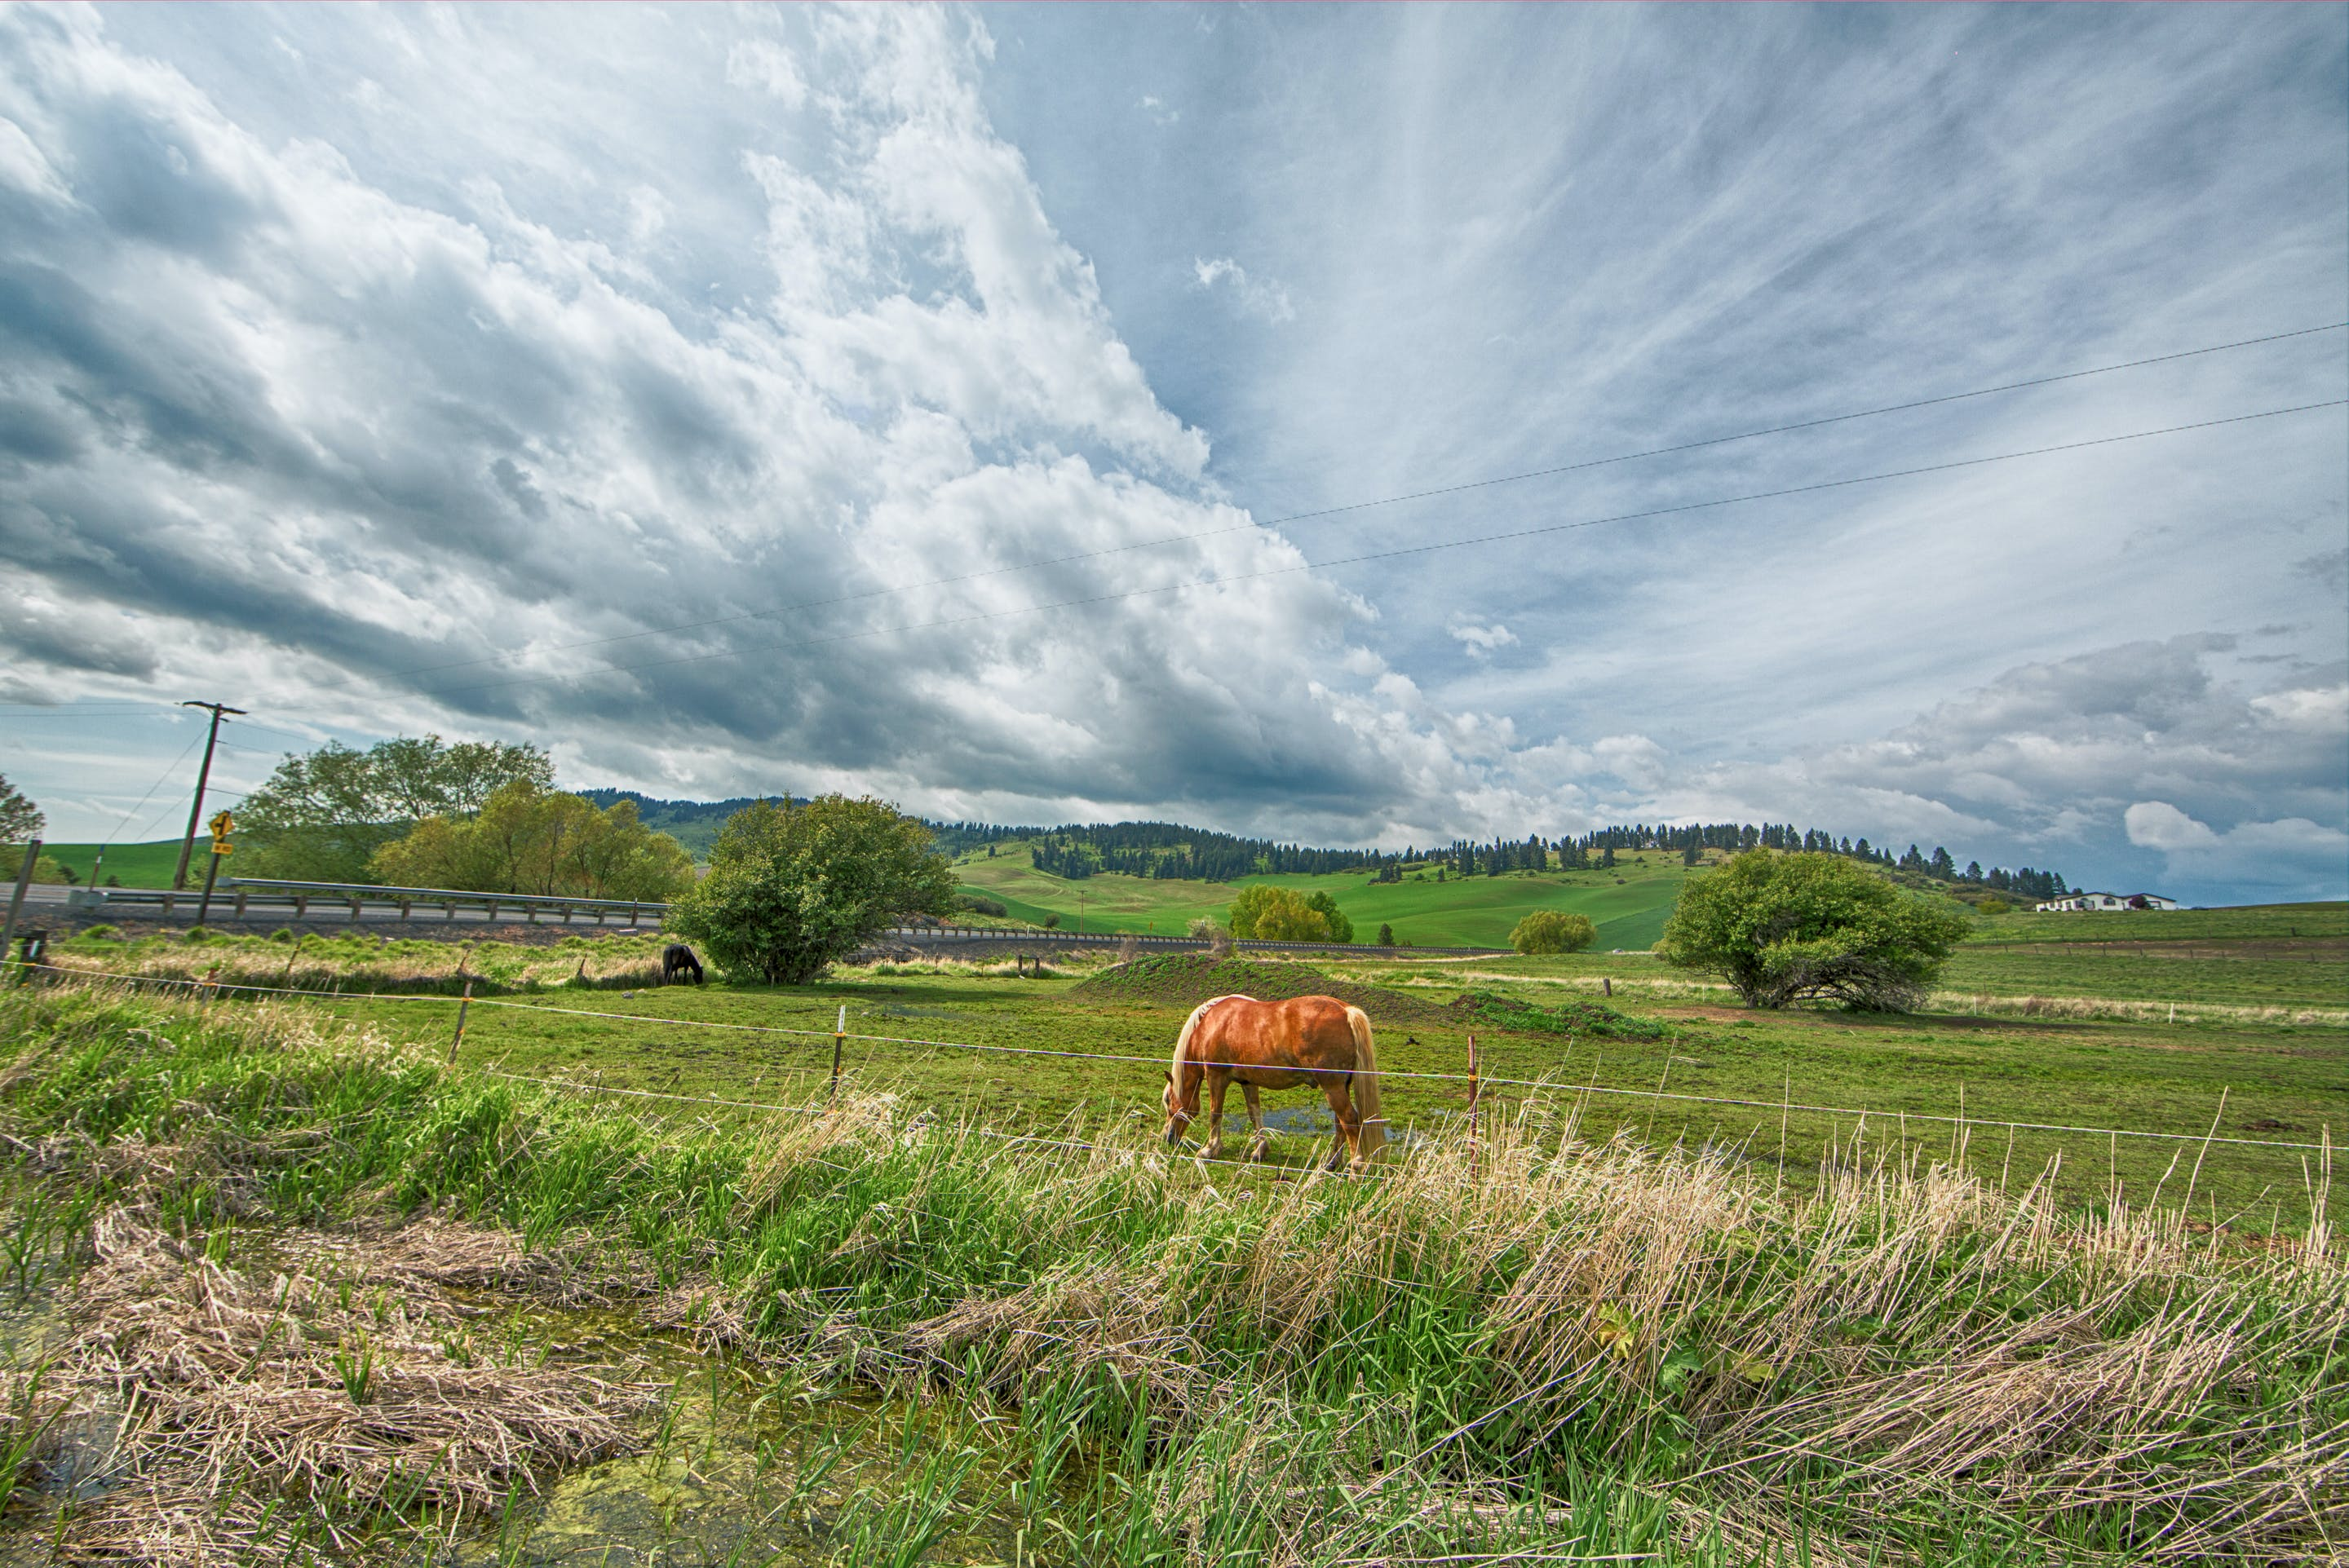 Orange Horse on Green Grass Field Under Gray Clouds